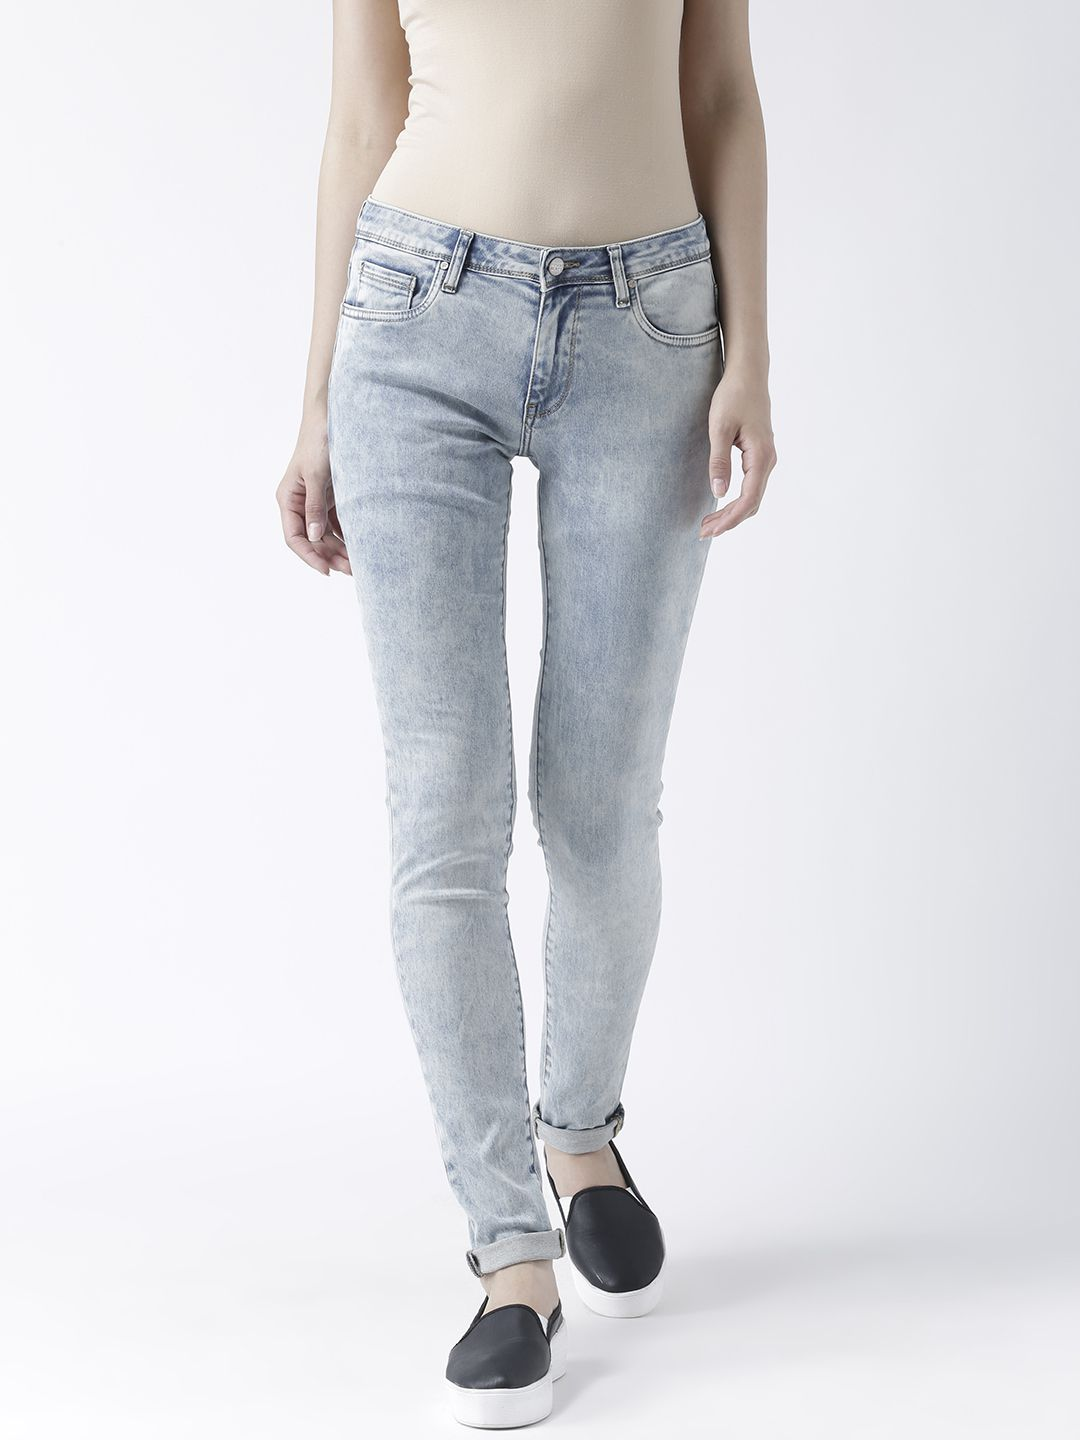 Fusion Beats Cotton Jeans - Blue